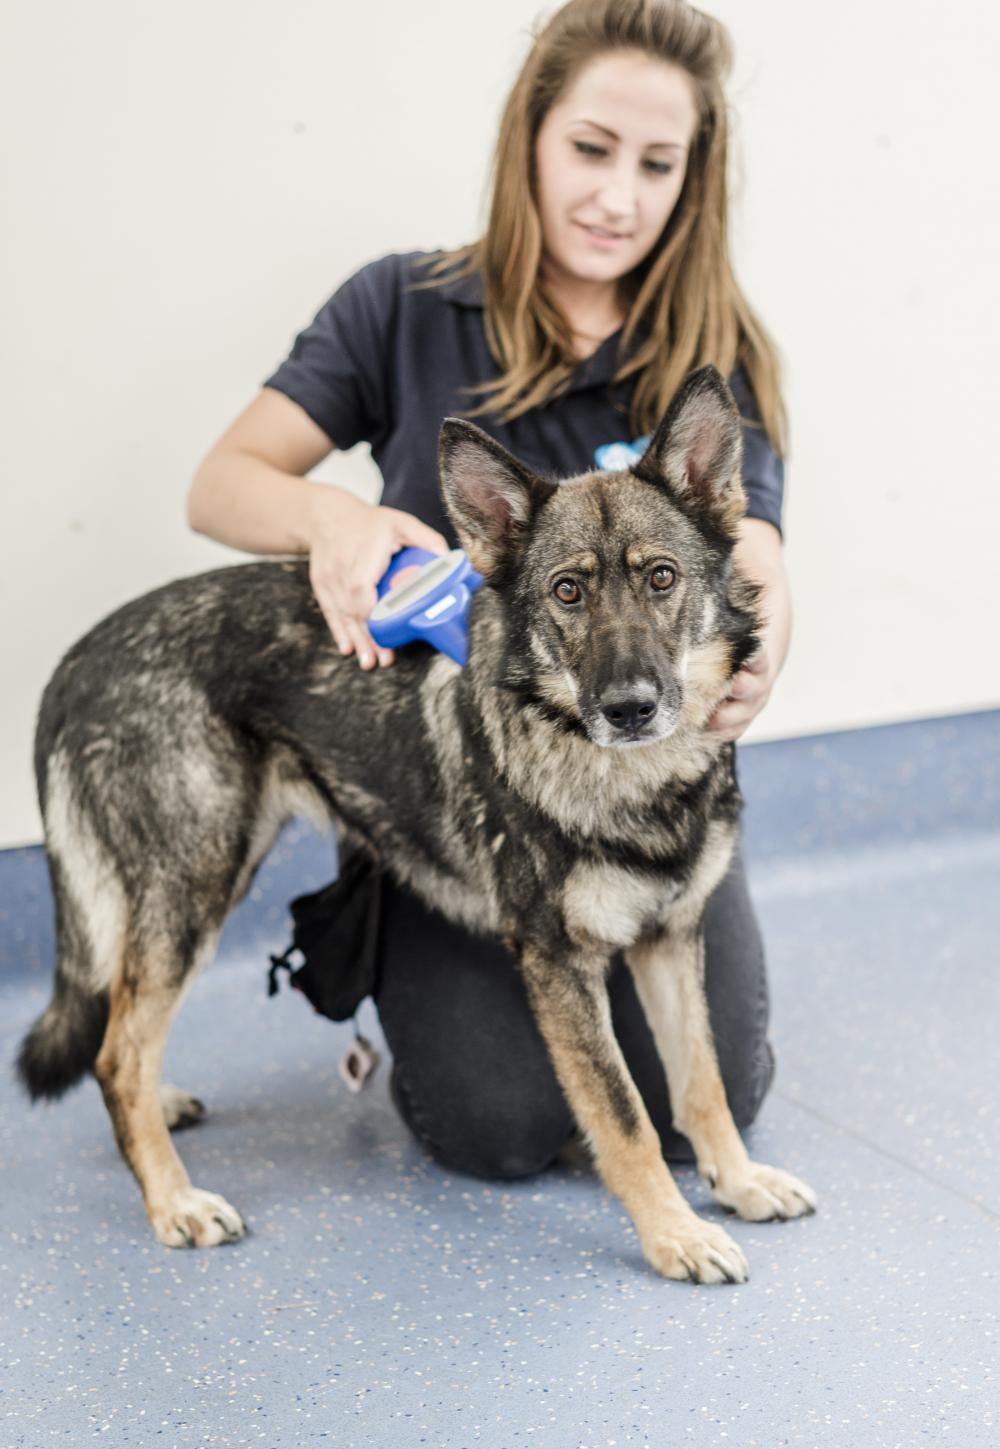 Animal Welfare Assistant Theresa scans a GSD for a microchip